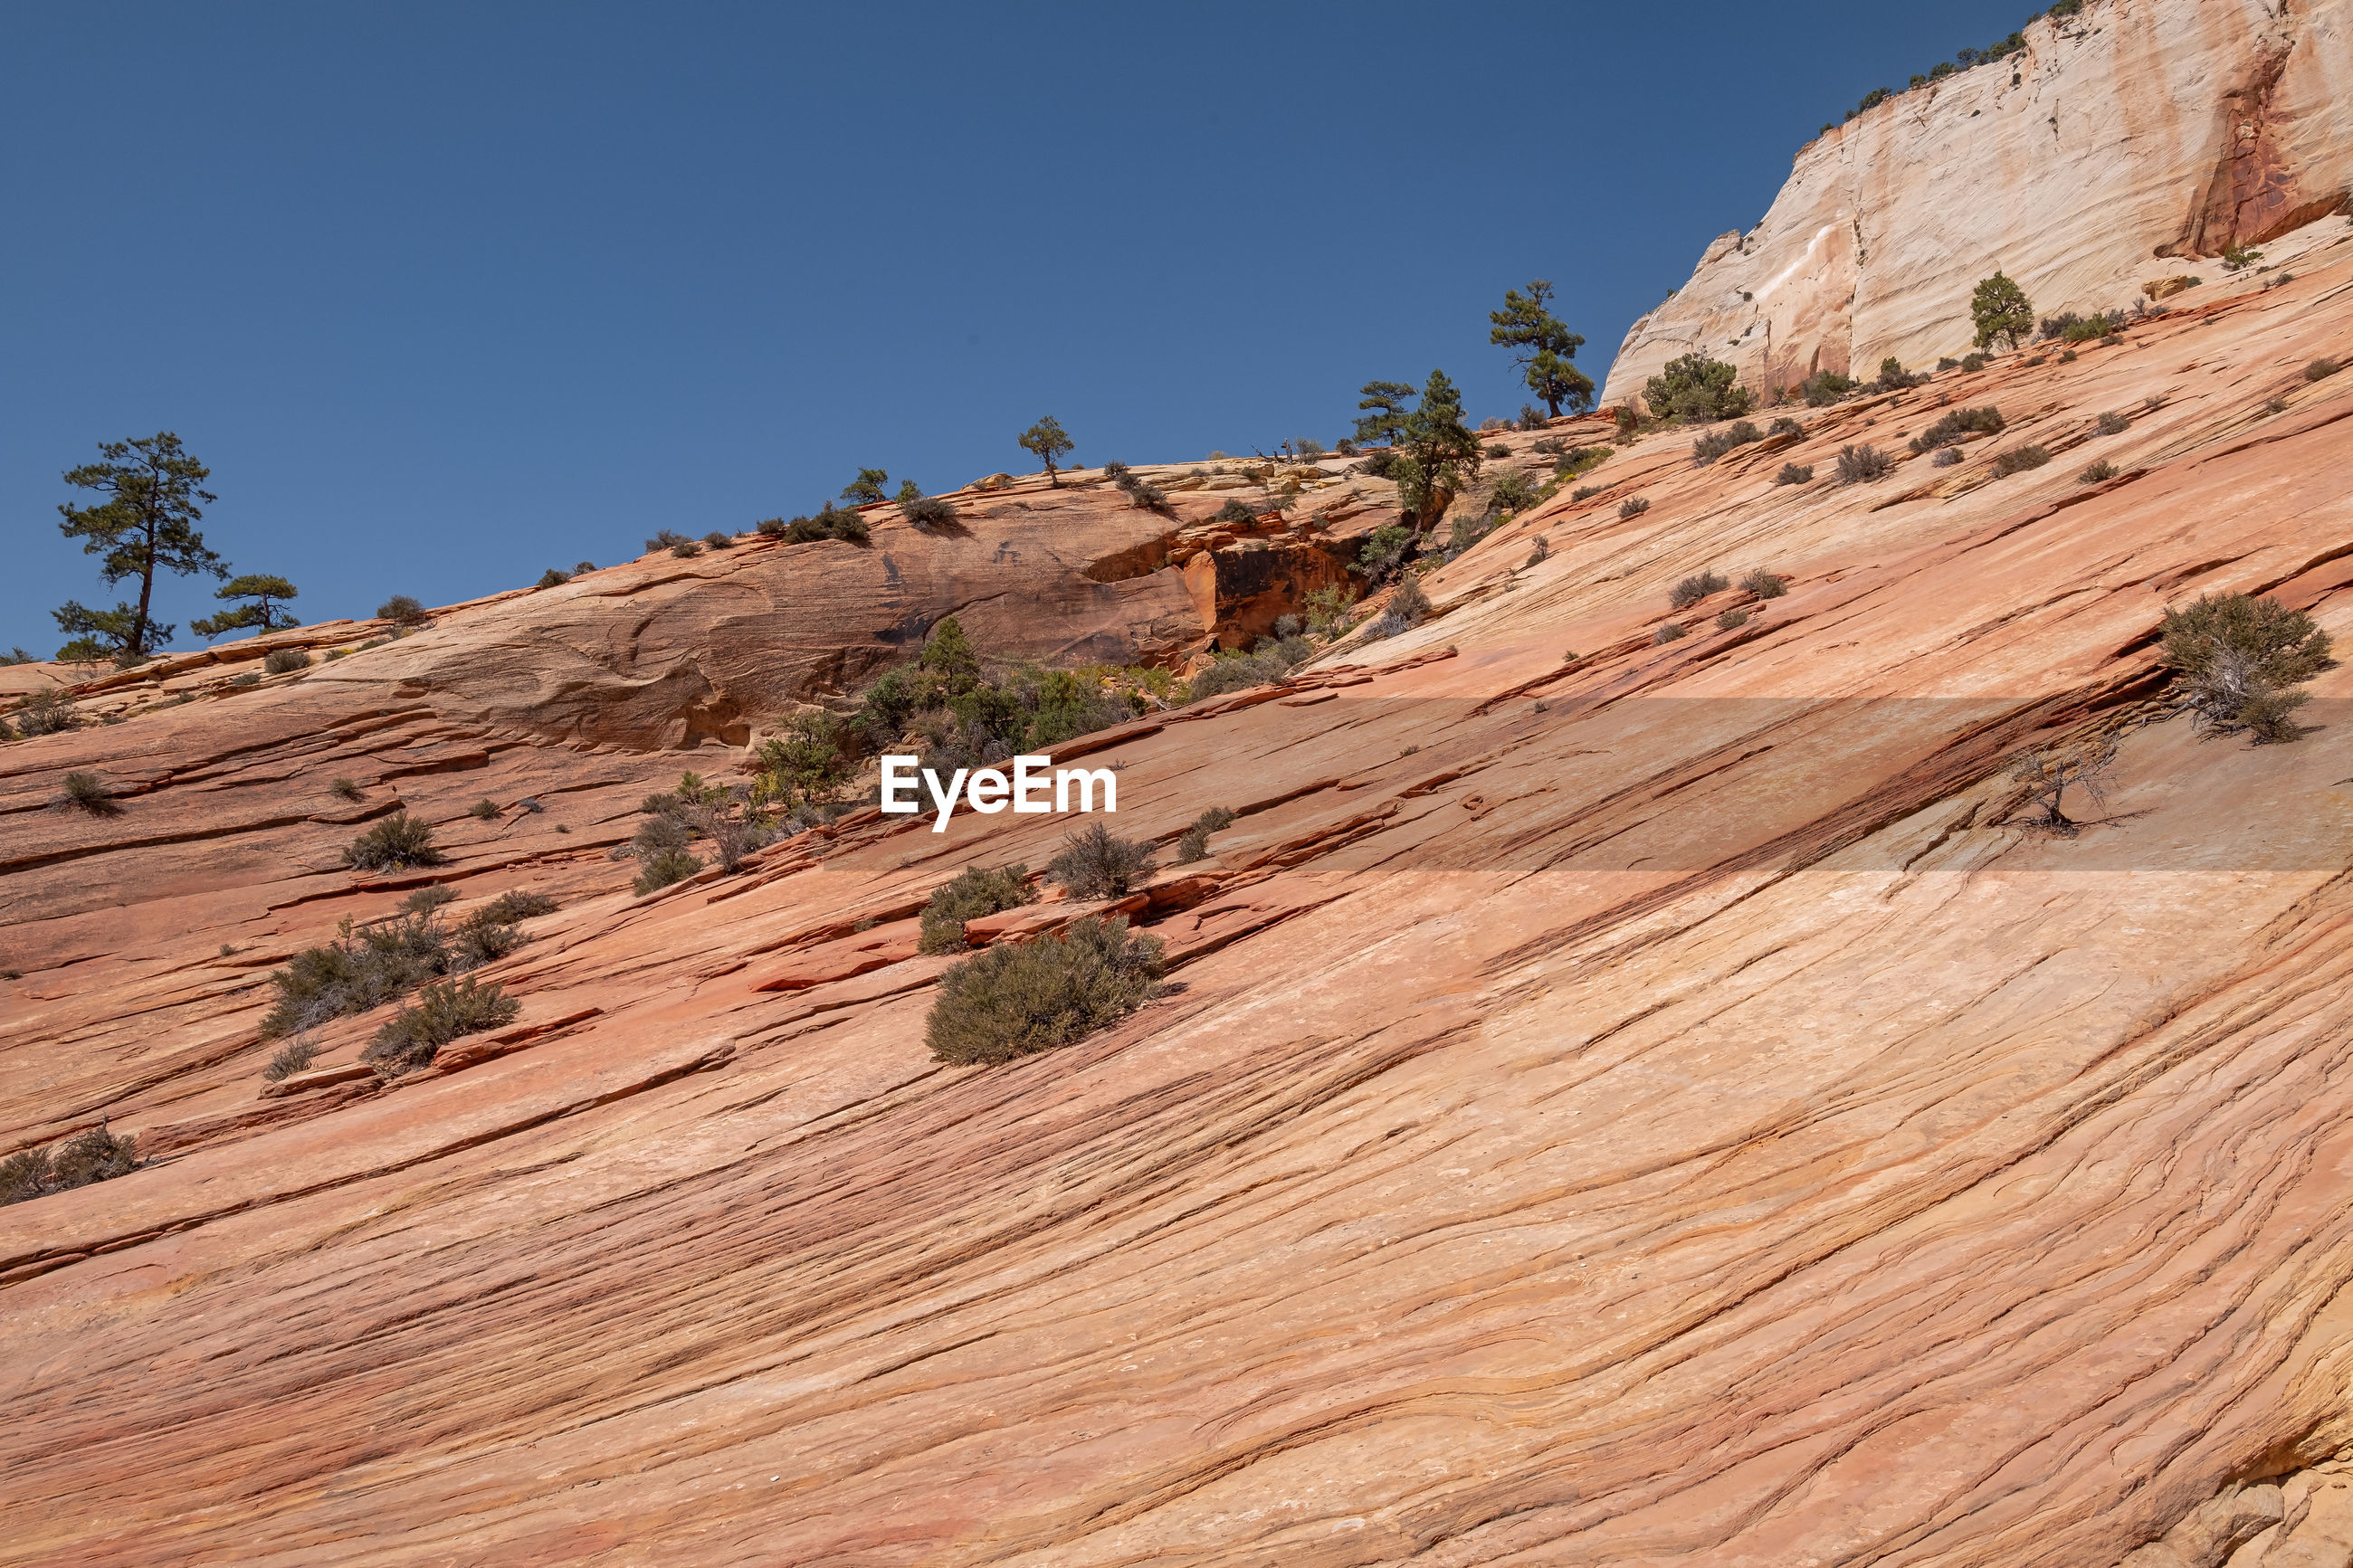 Red rock formation in zion national park, utah usa